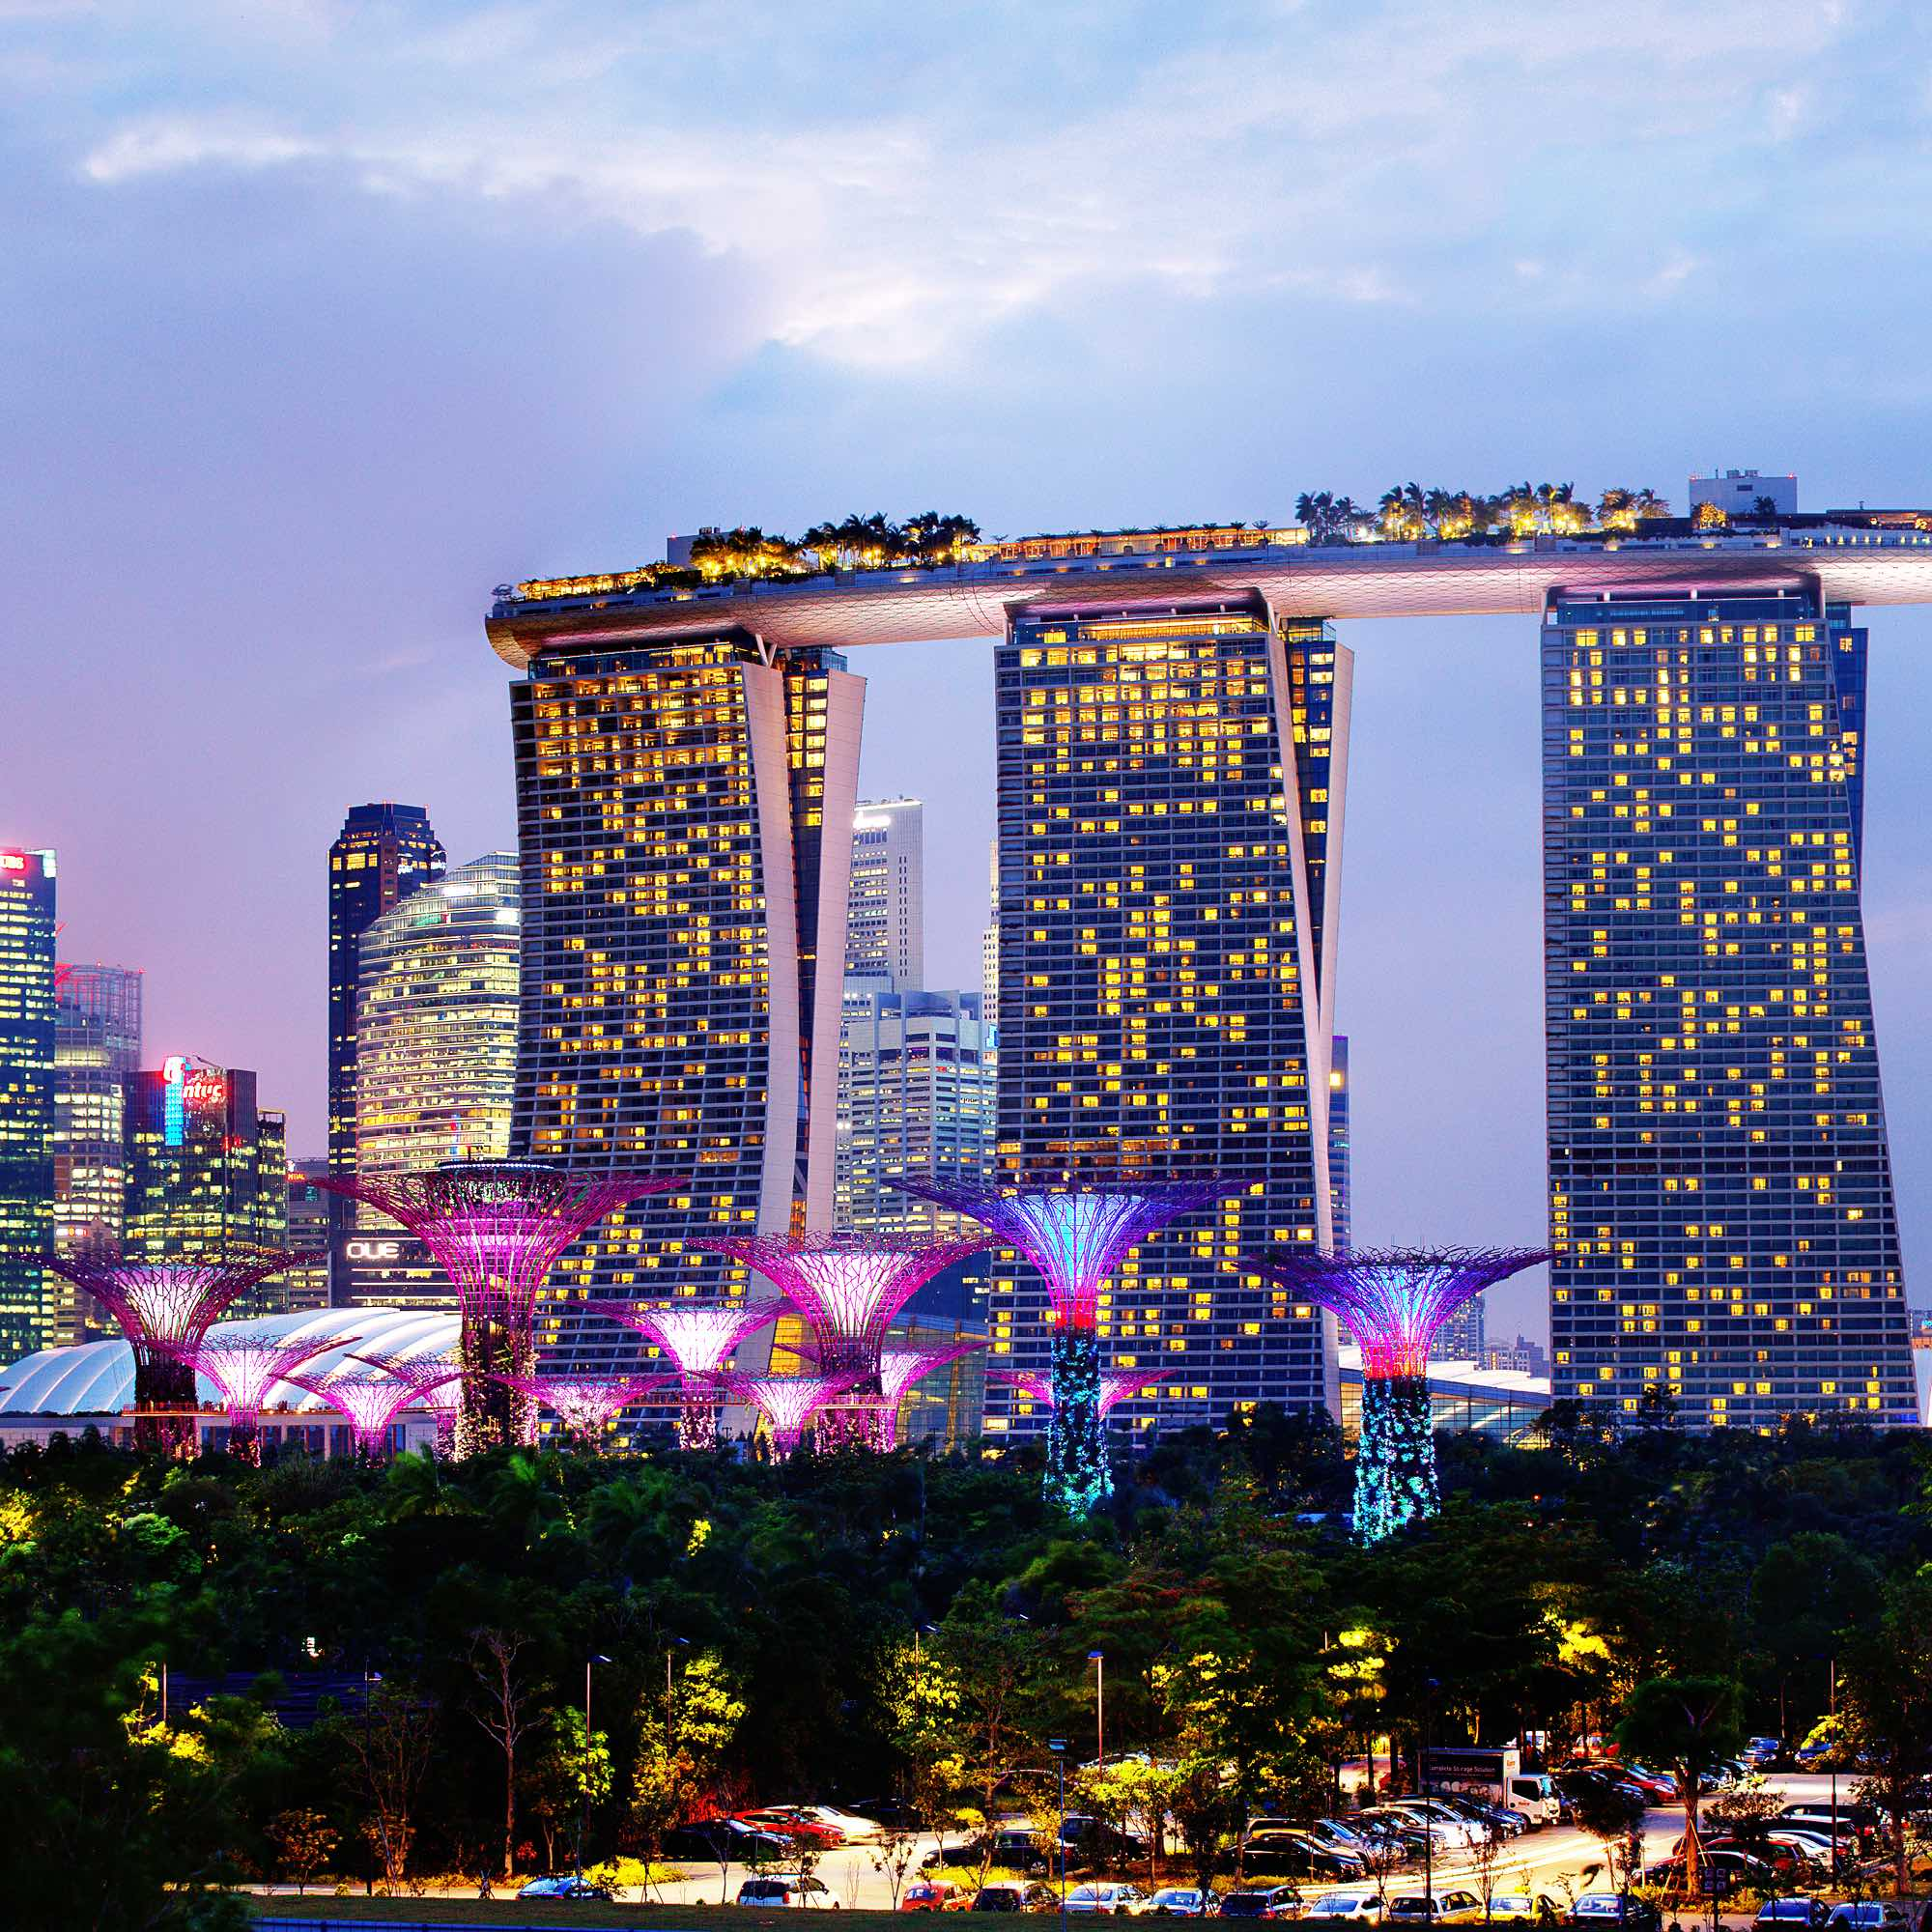 Seattle to Singapore $627-$649 RT Nonstop Airfares on Singapore Airlines (Limited Travel March-May 2020)